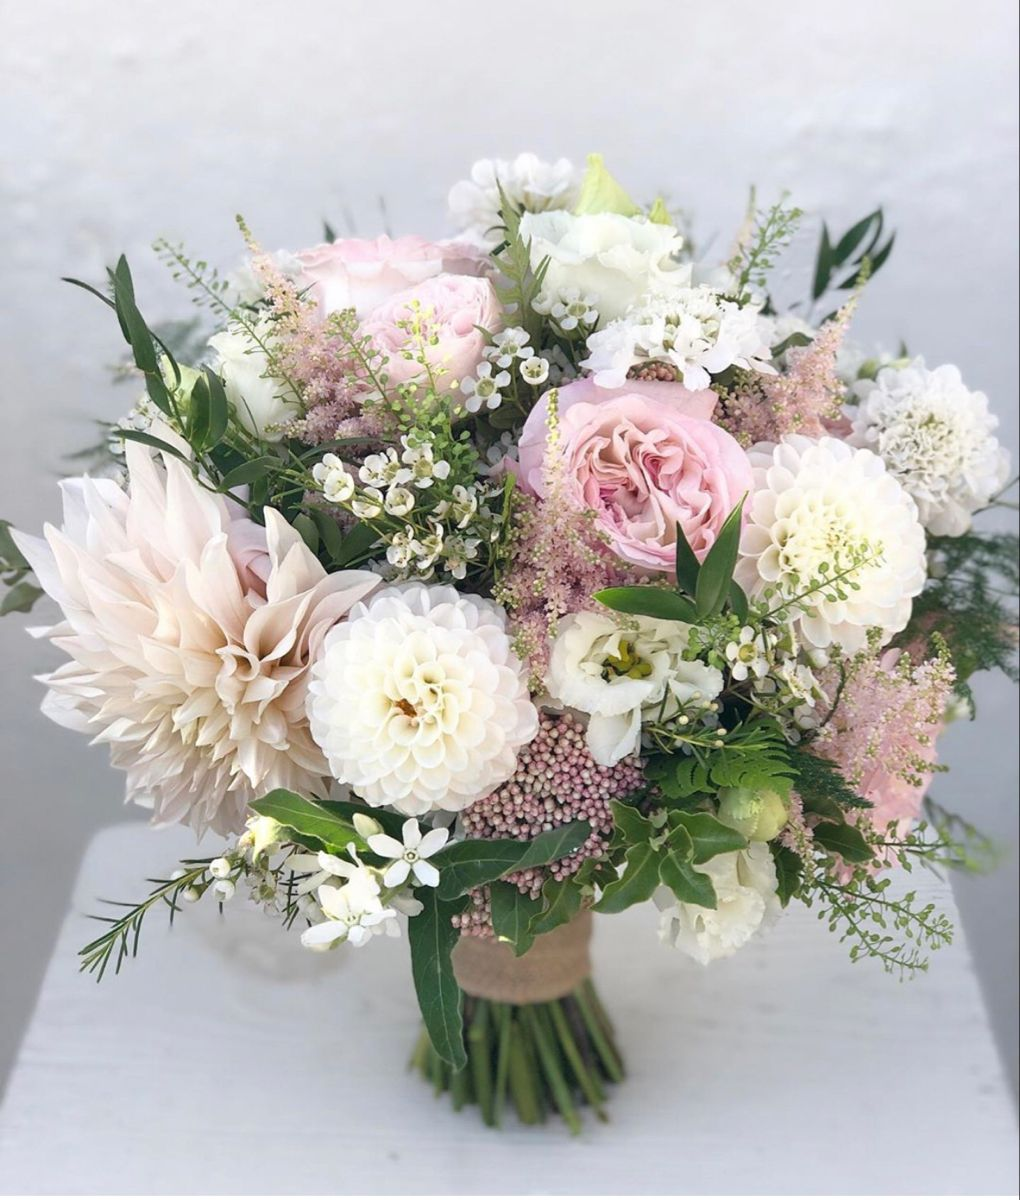 Wedding Bouquets In 2020 Wholesale Flowers Wedding Wedding Bouquets Bridal Bouquet